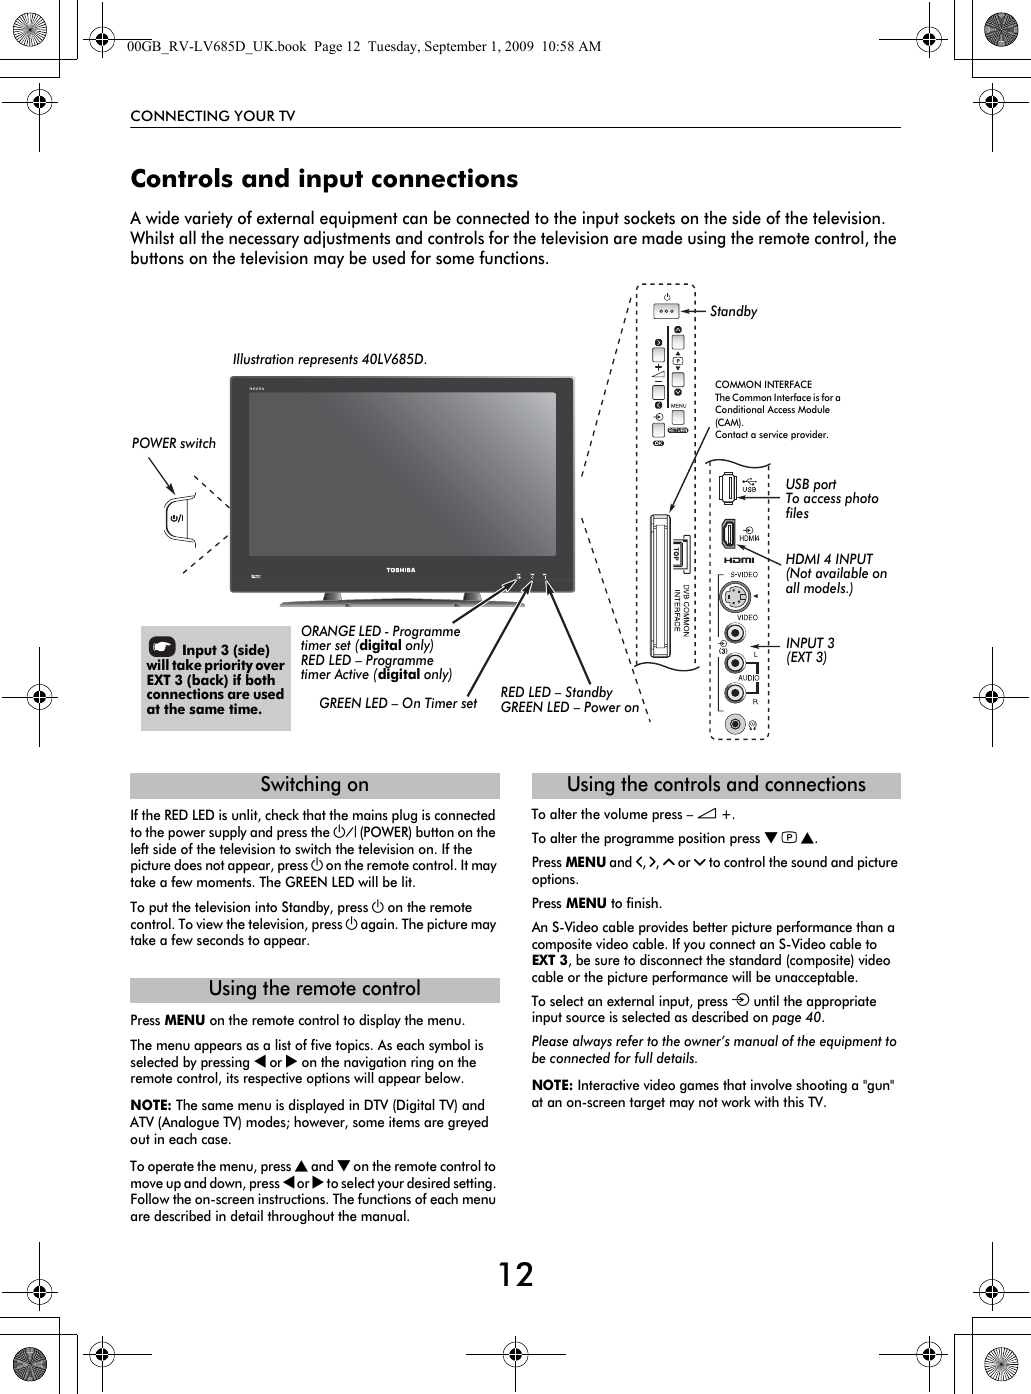 Toshiba Lv665 32 Users Manual